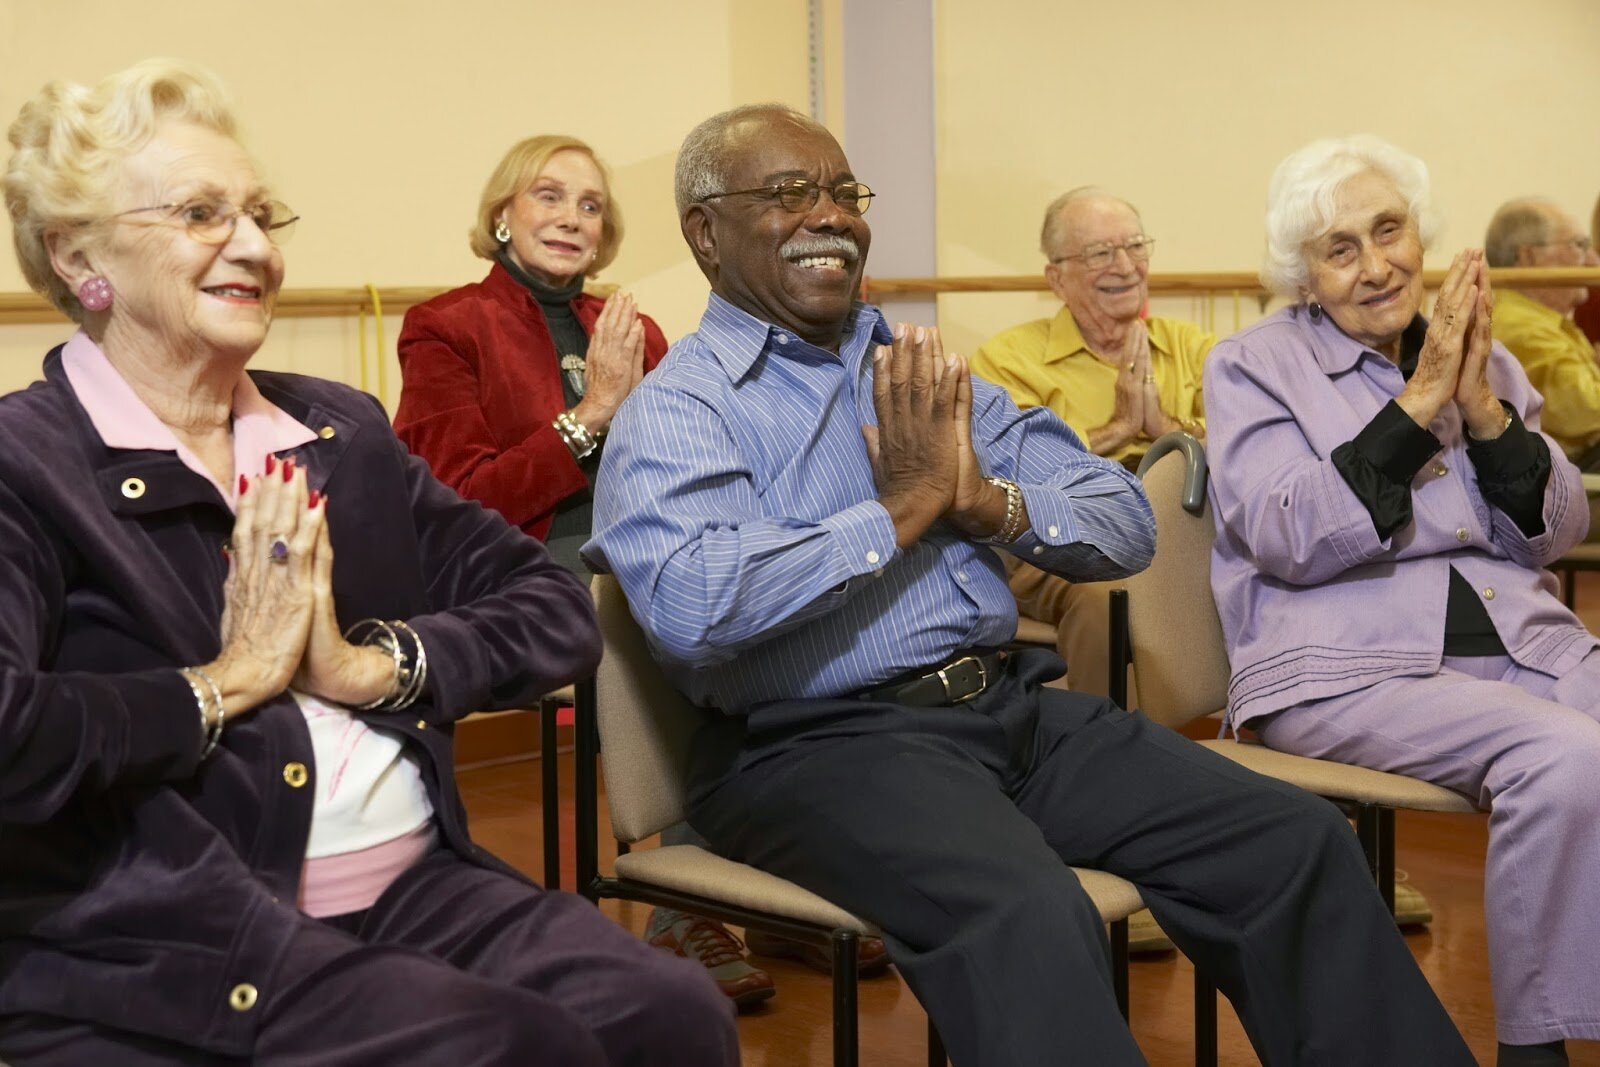 Residents Clapping.jpg